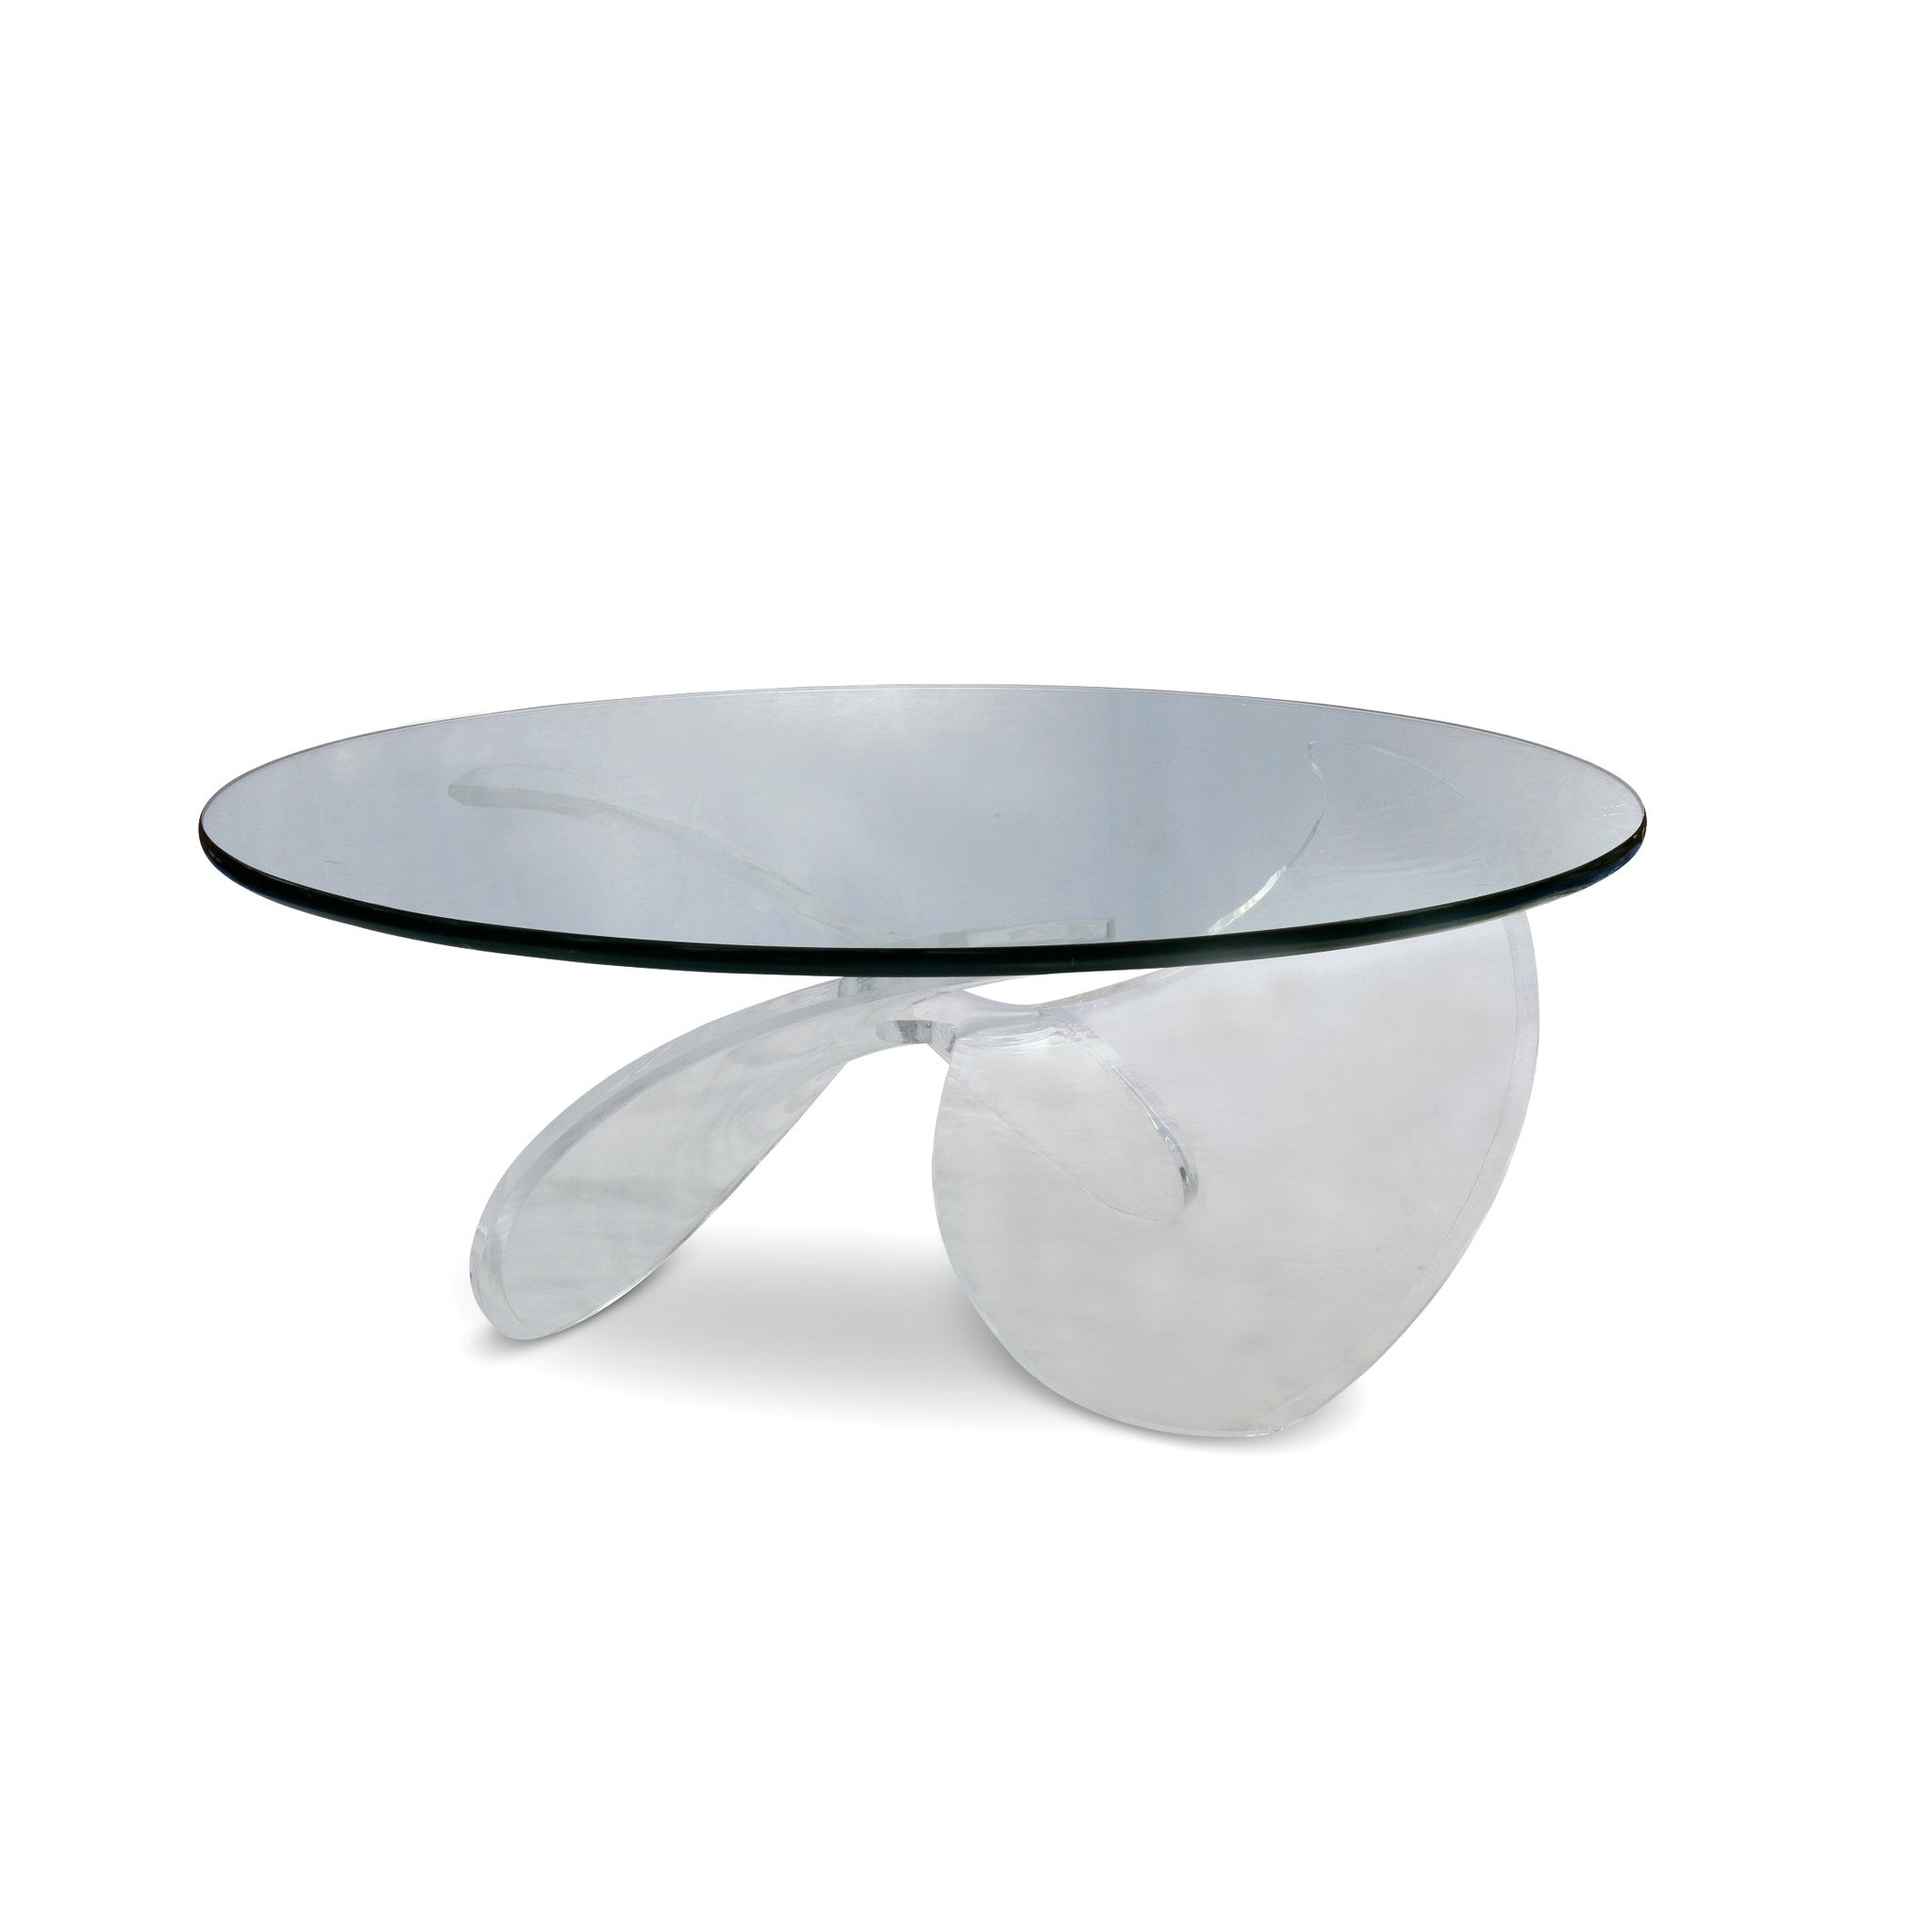 Lucite Propeller Base Cocktail Table with Glass Top